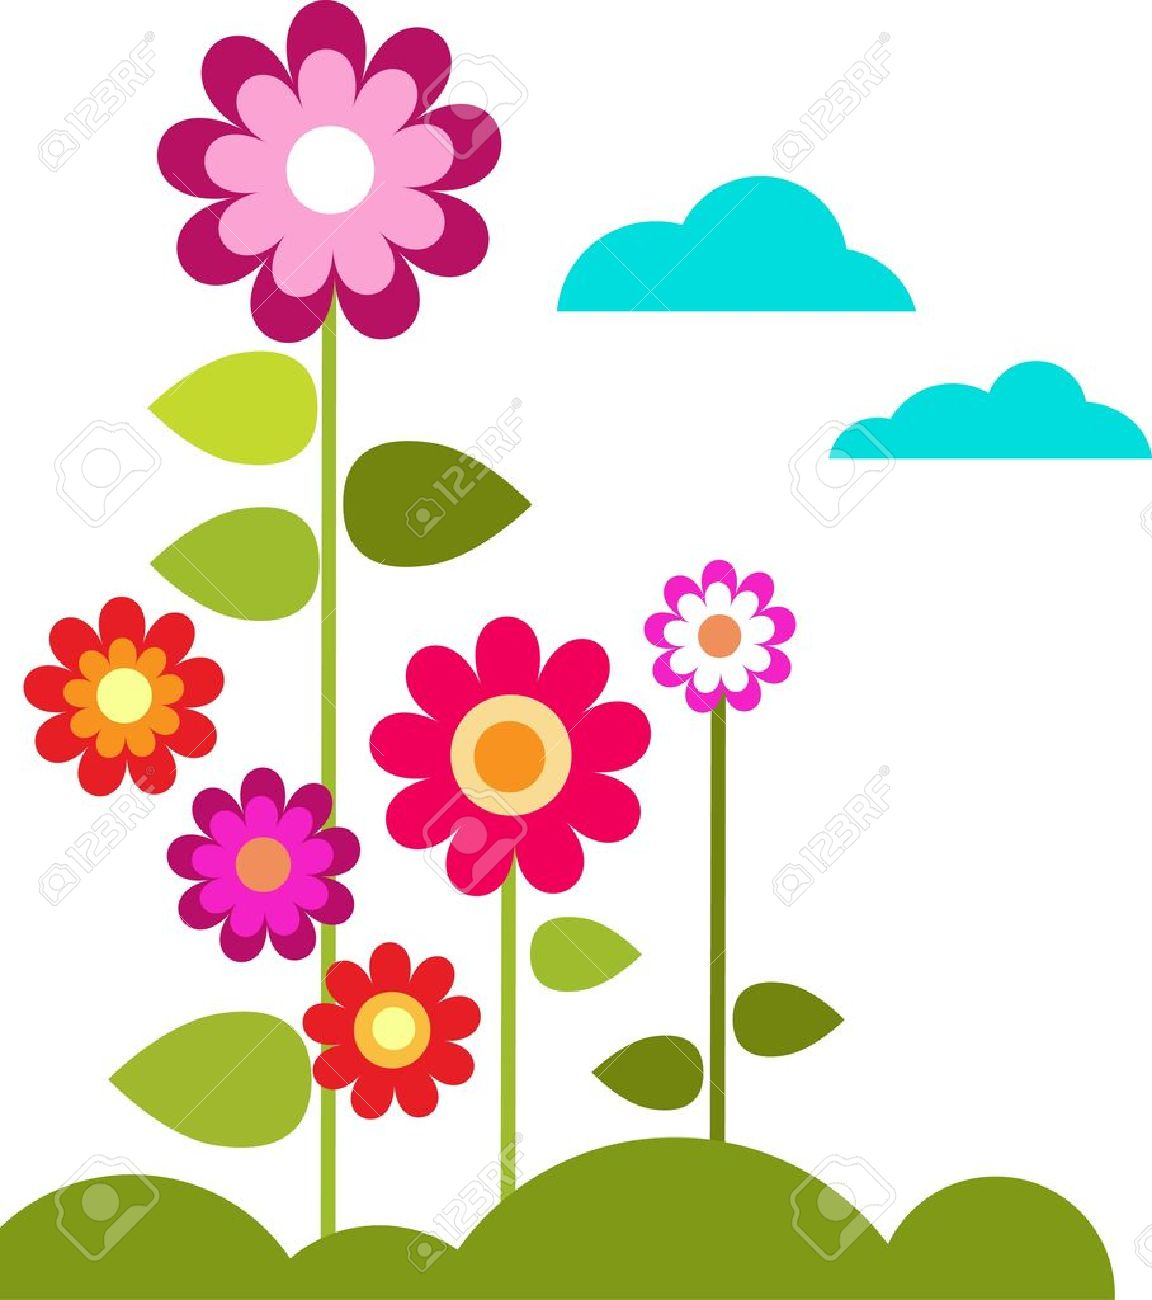 flowers cartoon stock photos royalty free flowers cartoon images